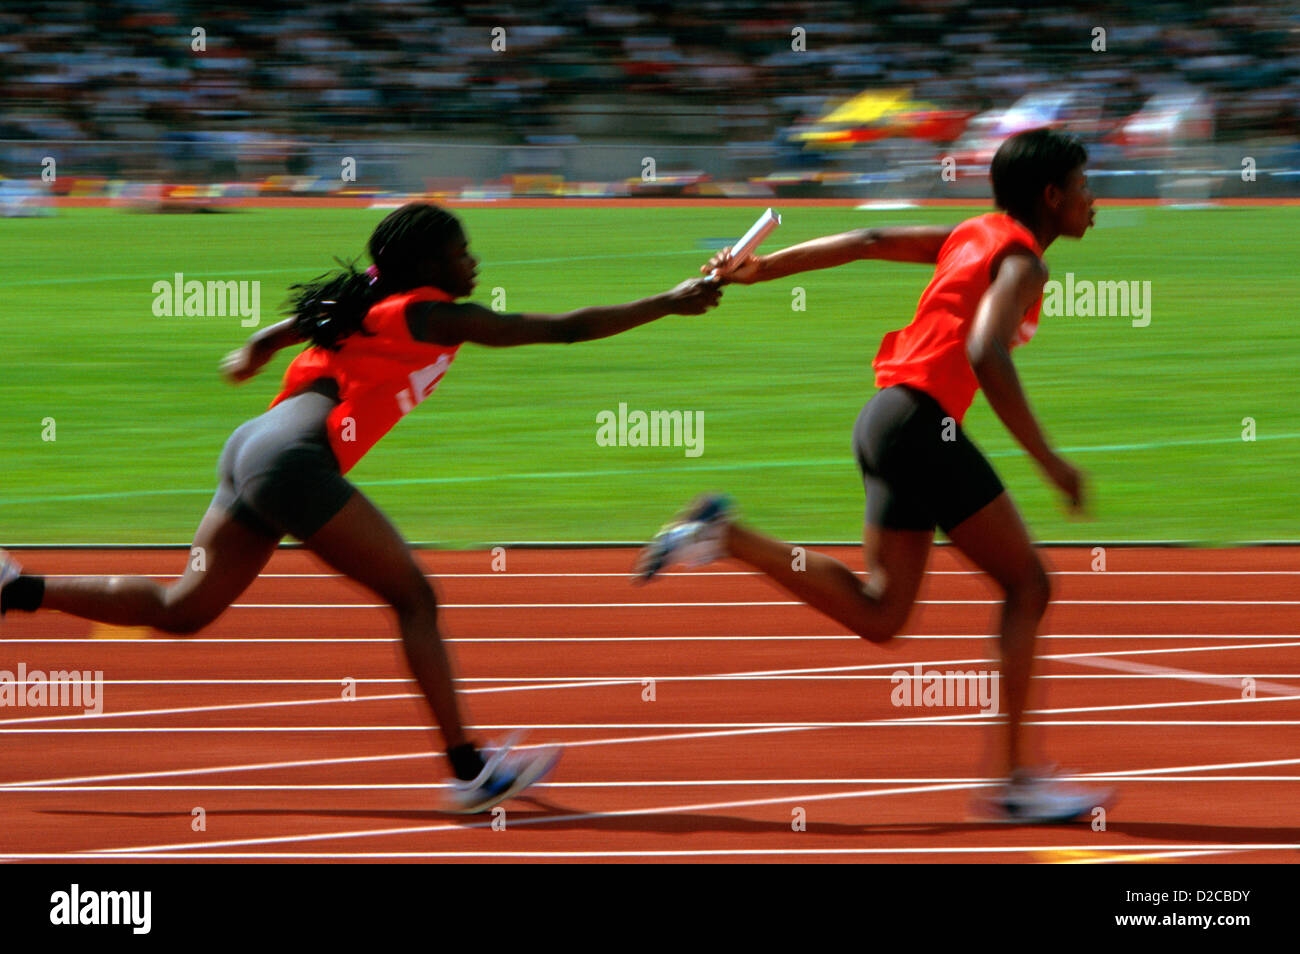 Track & Field. Runners In A Relay Race, Passing Baton Stock Photo ...